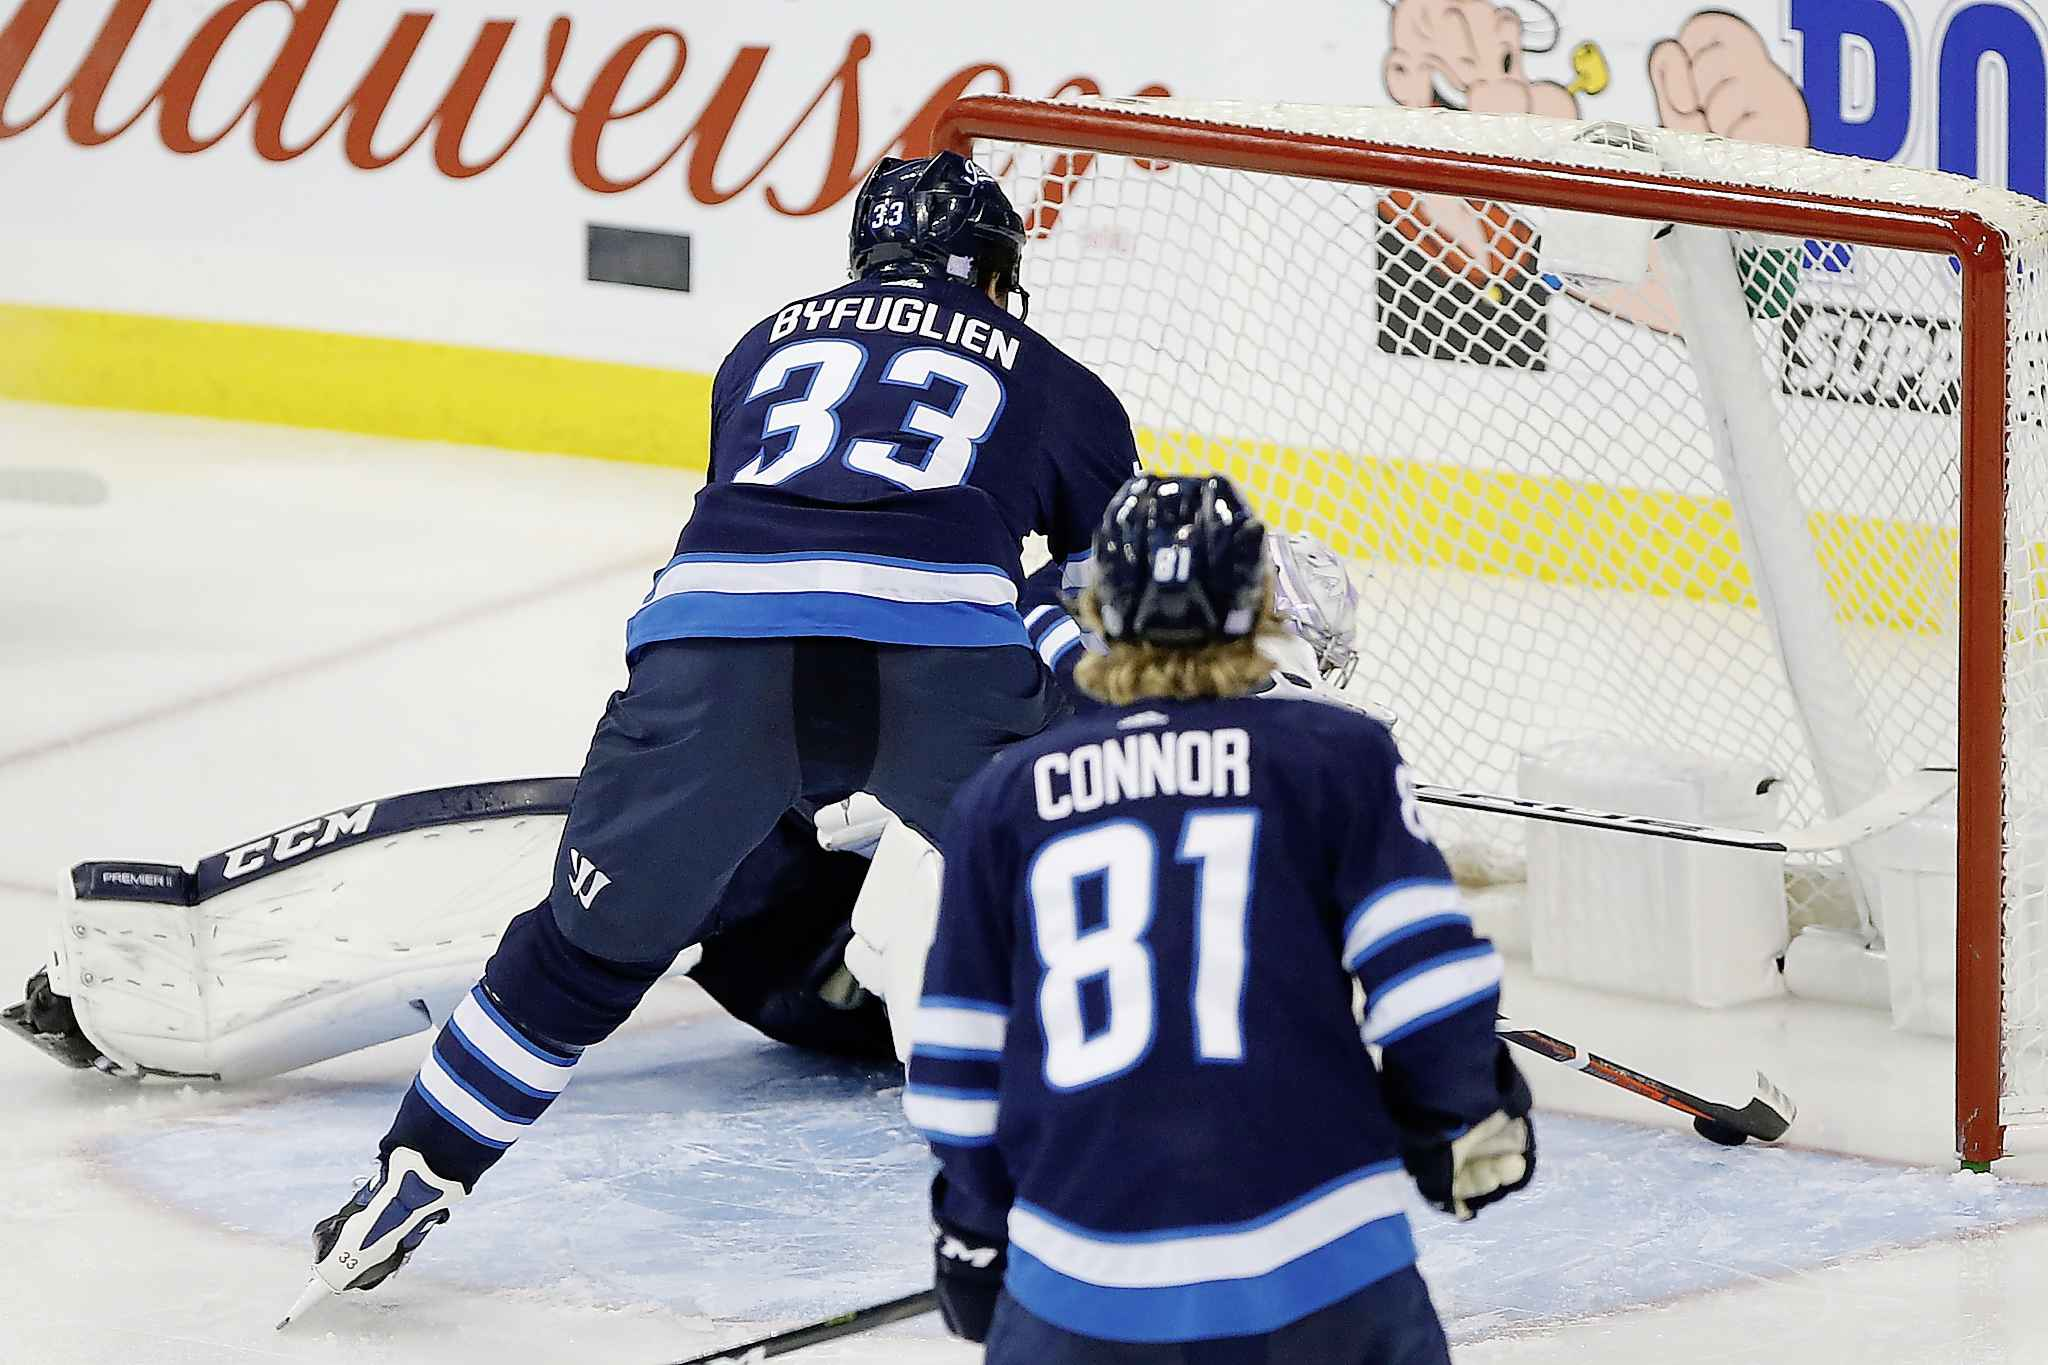 A Washington Capitals shot bounces off Winnipeg Jets goaltender Connor Hellebuyck toward the goal line but Dustin Byfuglien reached in and stopped the puck on the line during third period Wednesday.